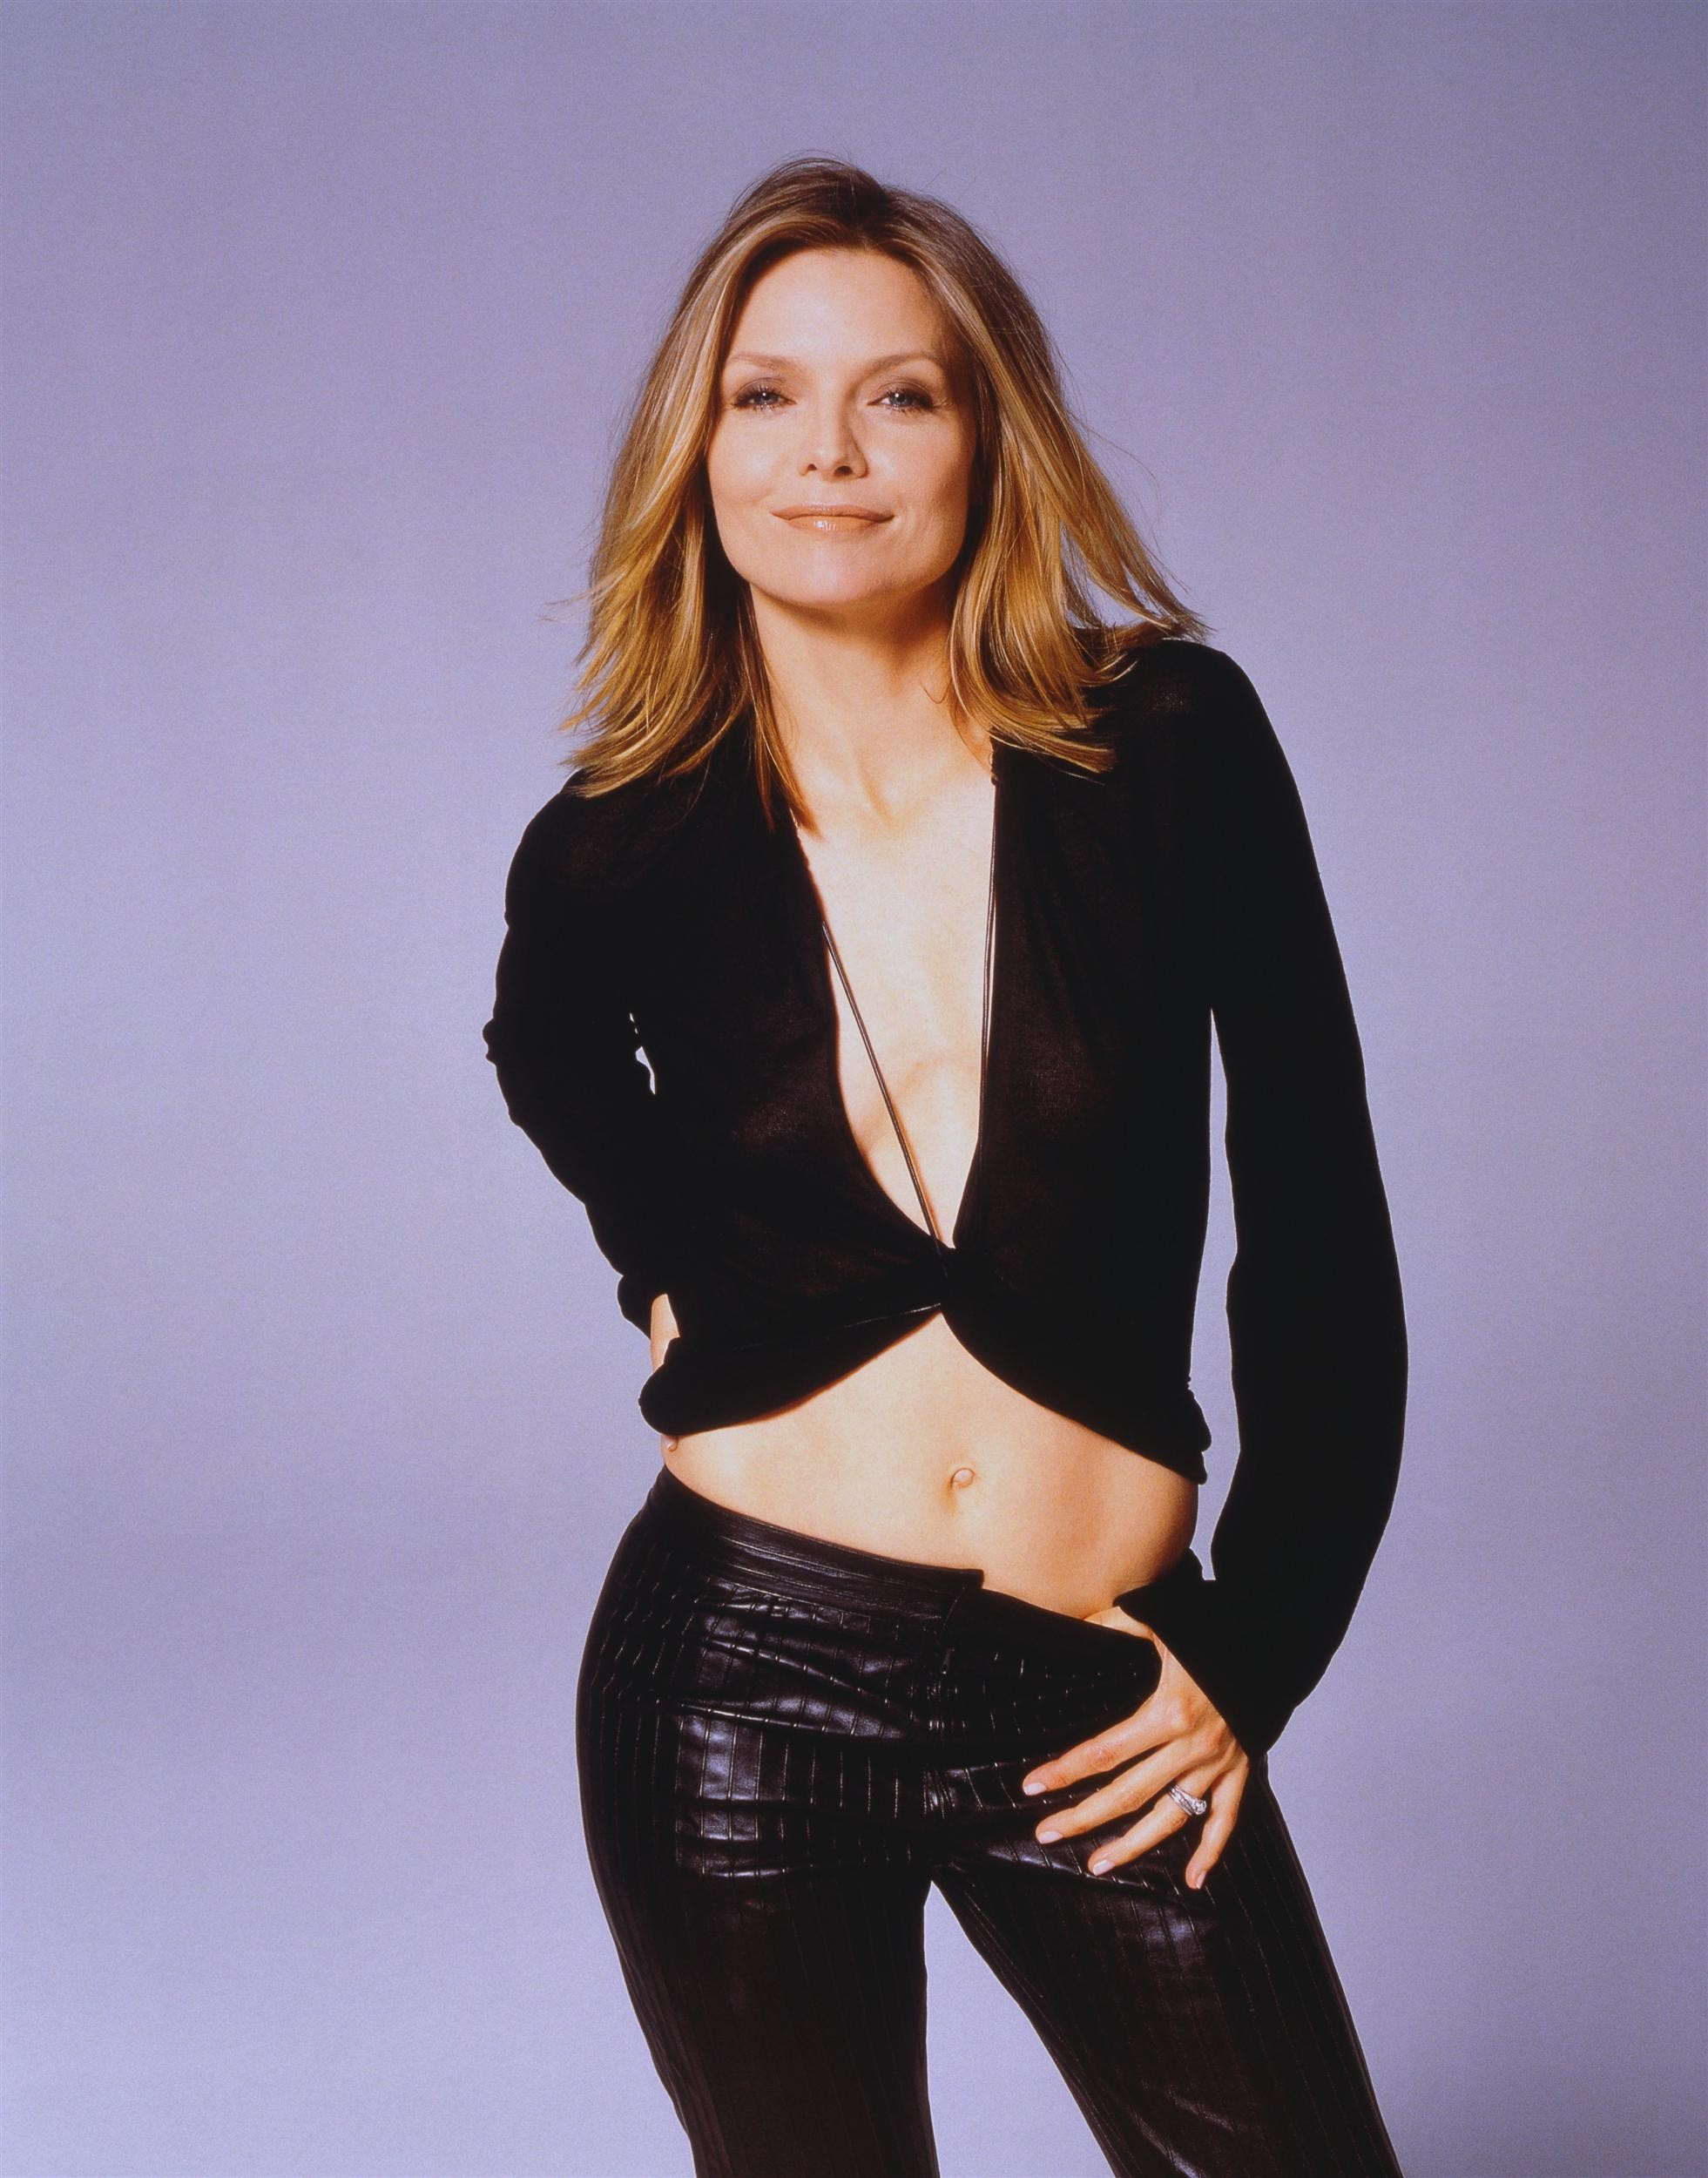 Res: 1961x2500, Photo of Michelle Pfeiffer #111762. Upload date: 2008-10-08. Number of  votes: 10. There are 200 more pics in the Michelle Pfeiffer photo gallery.